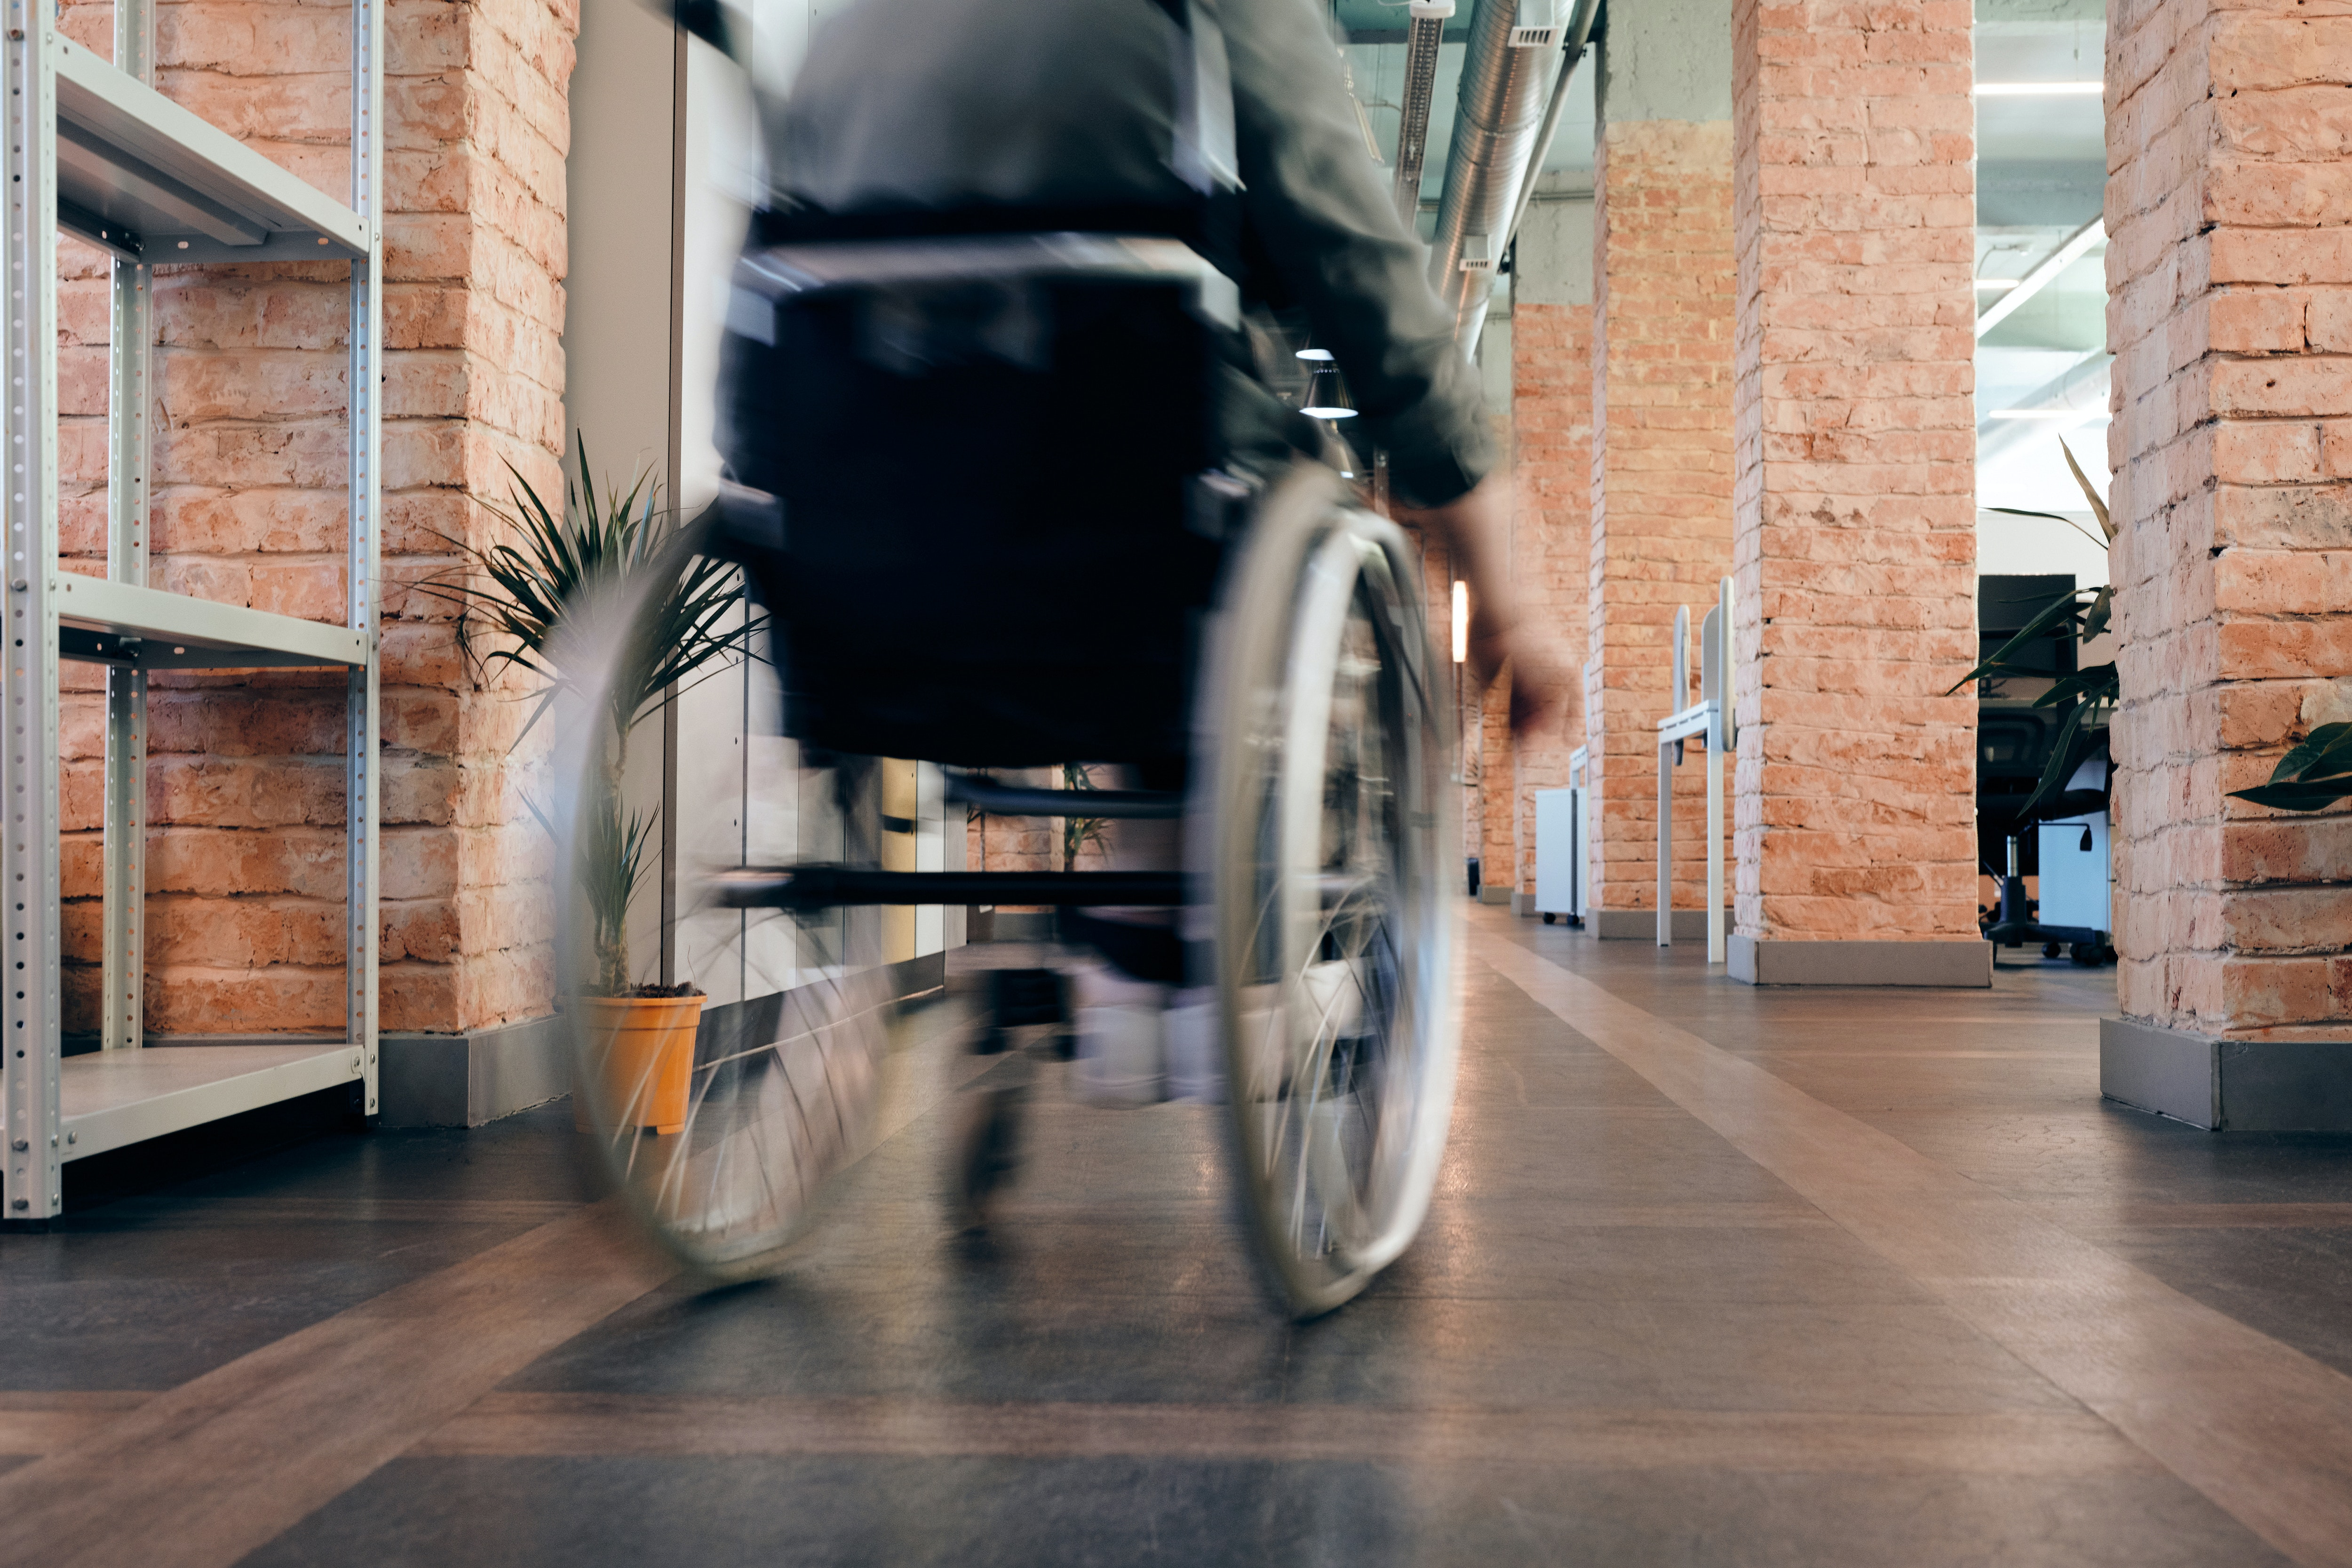 Access-ability: how can accessibility be improved in building design?